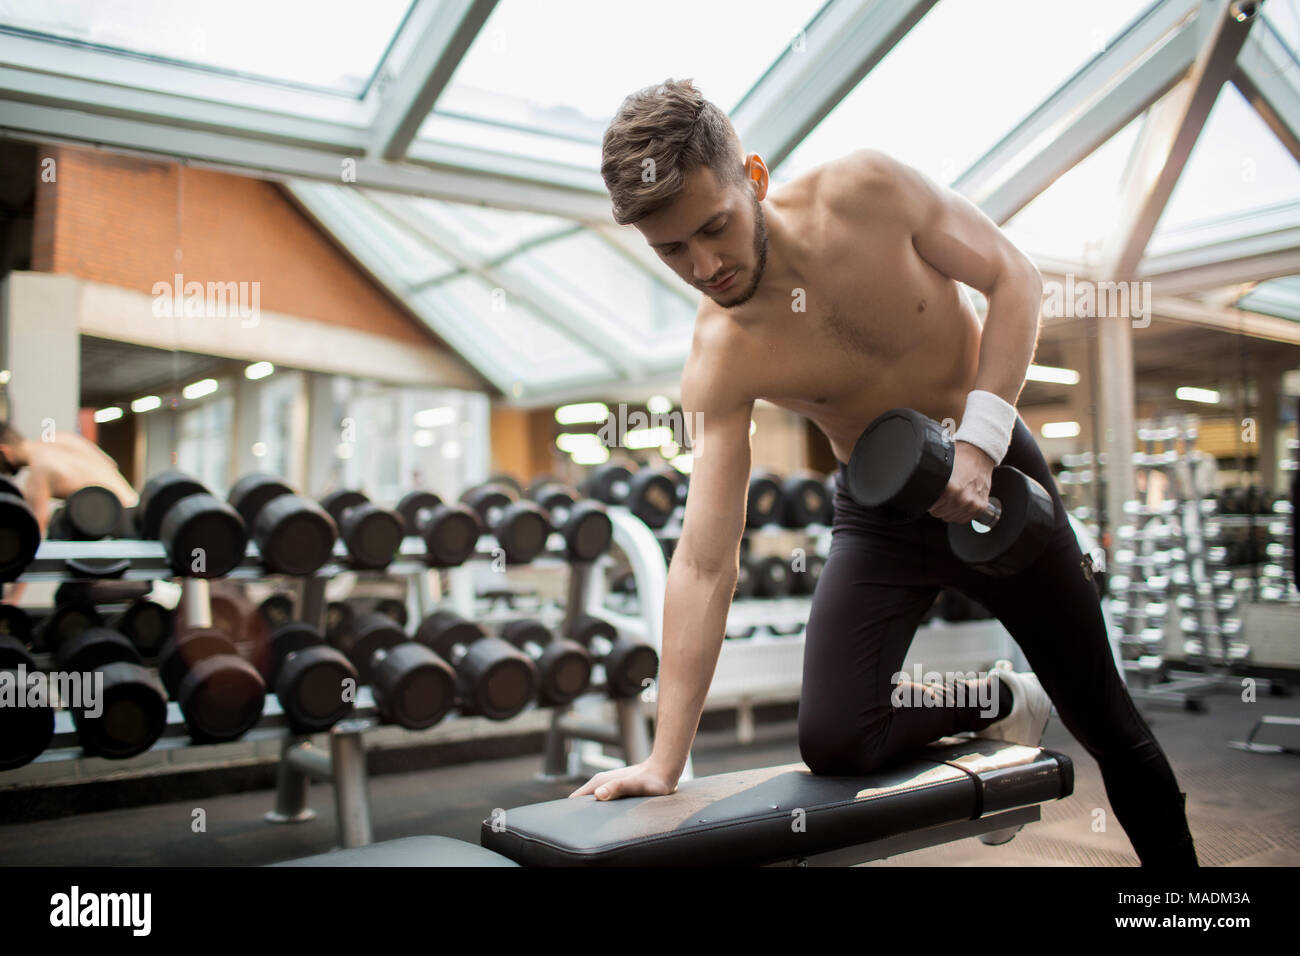 Young shirtless man in black leggins and sports-shoes leaning on right arm and bent knee while exercising with heavy dumbbell in gym - Stock Image